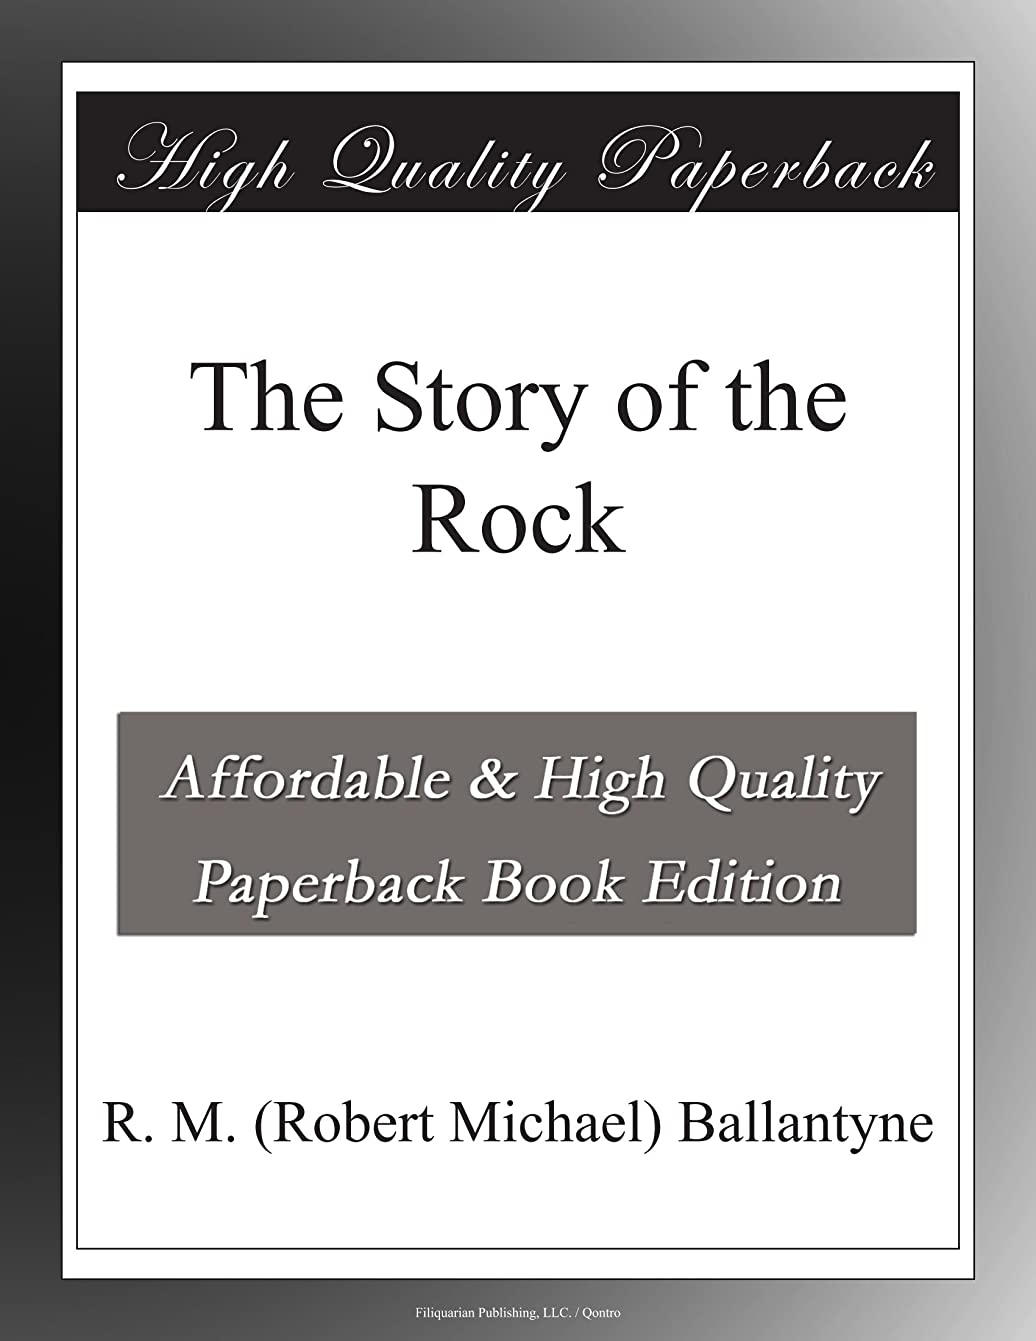 The Story of the Rock